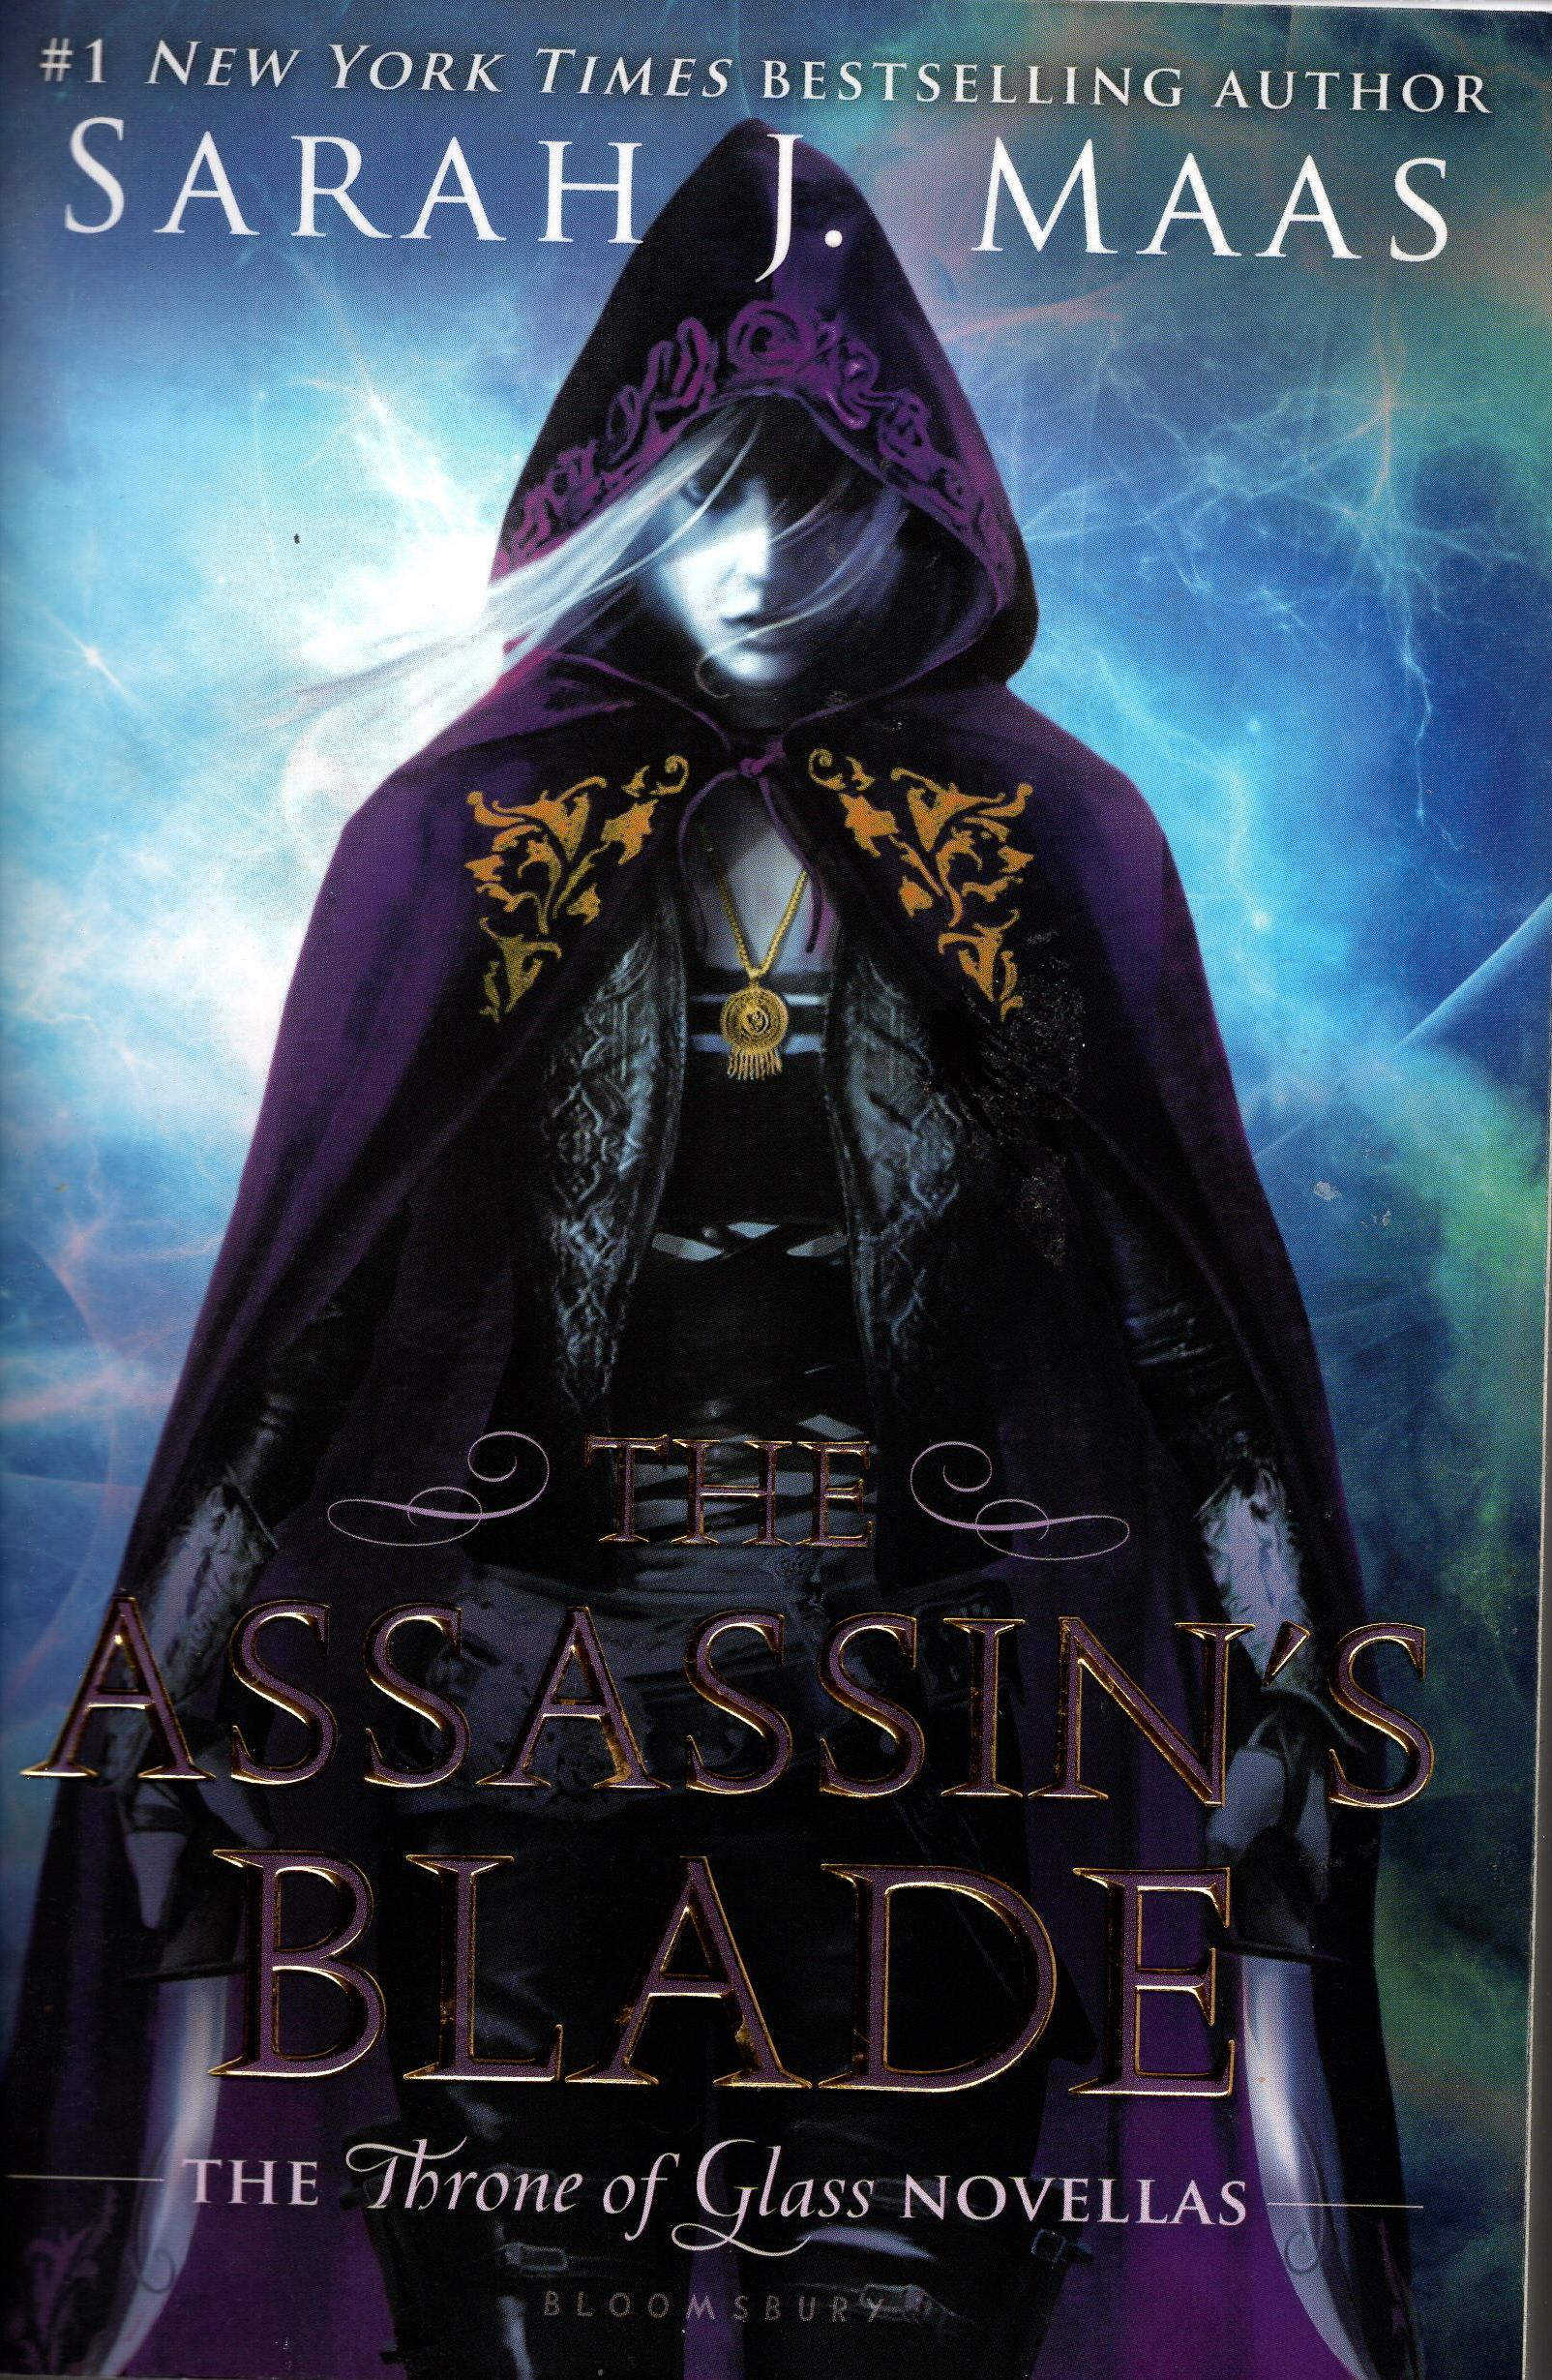 Image for ASSASSIN'S BLADE, THE